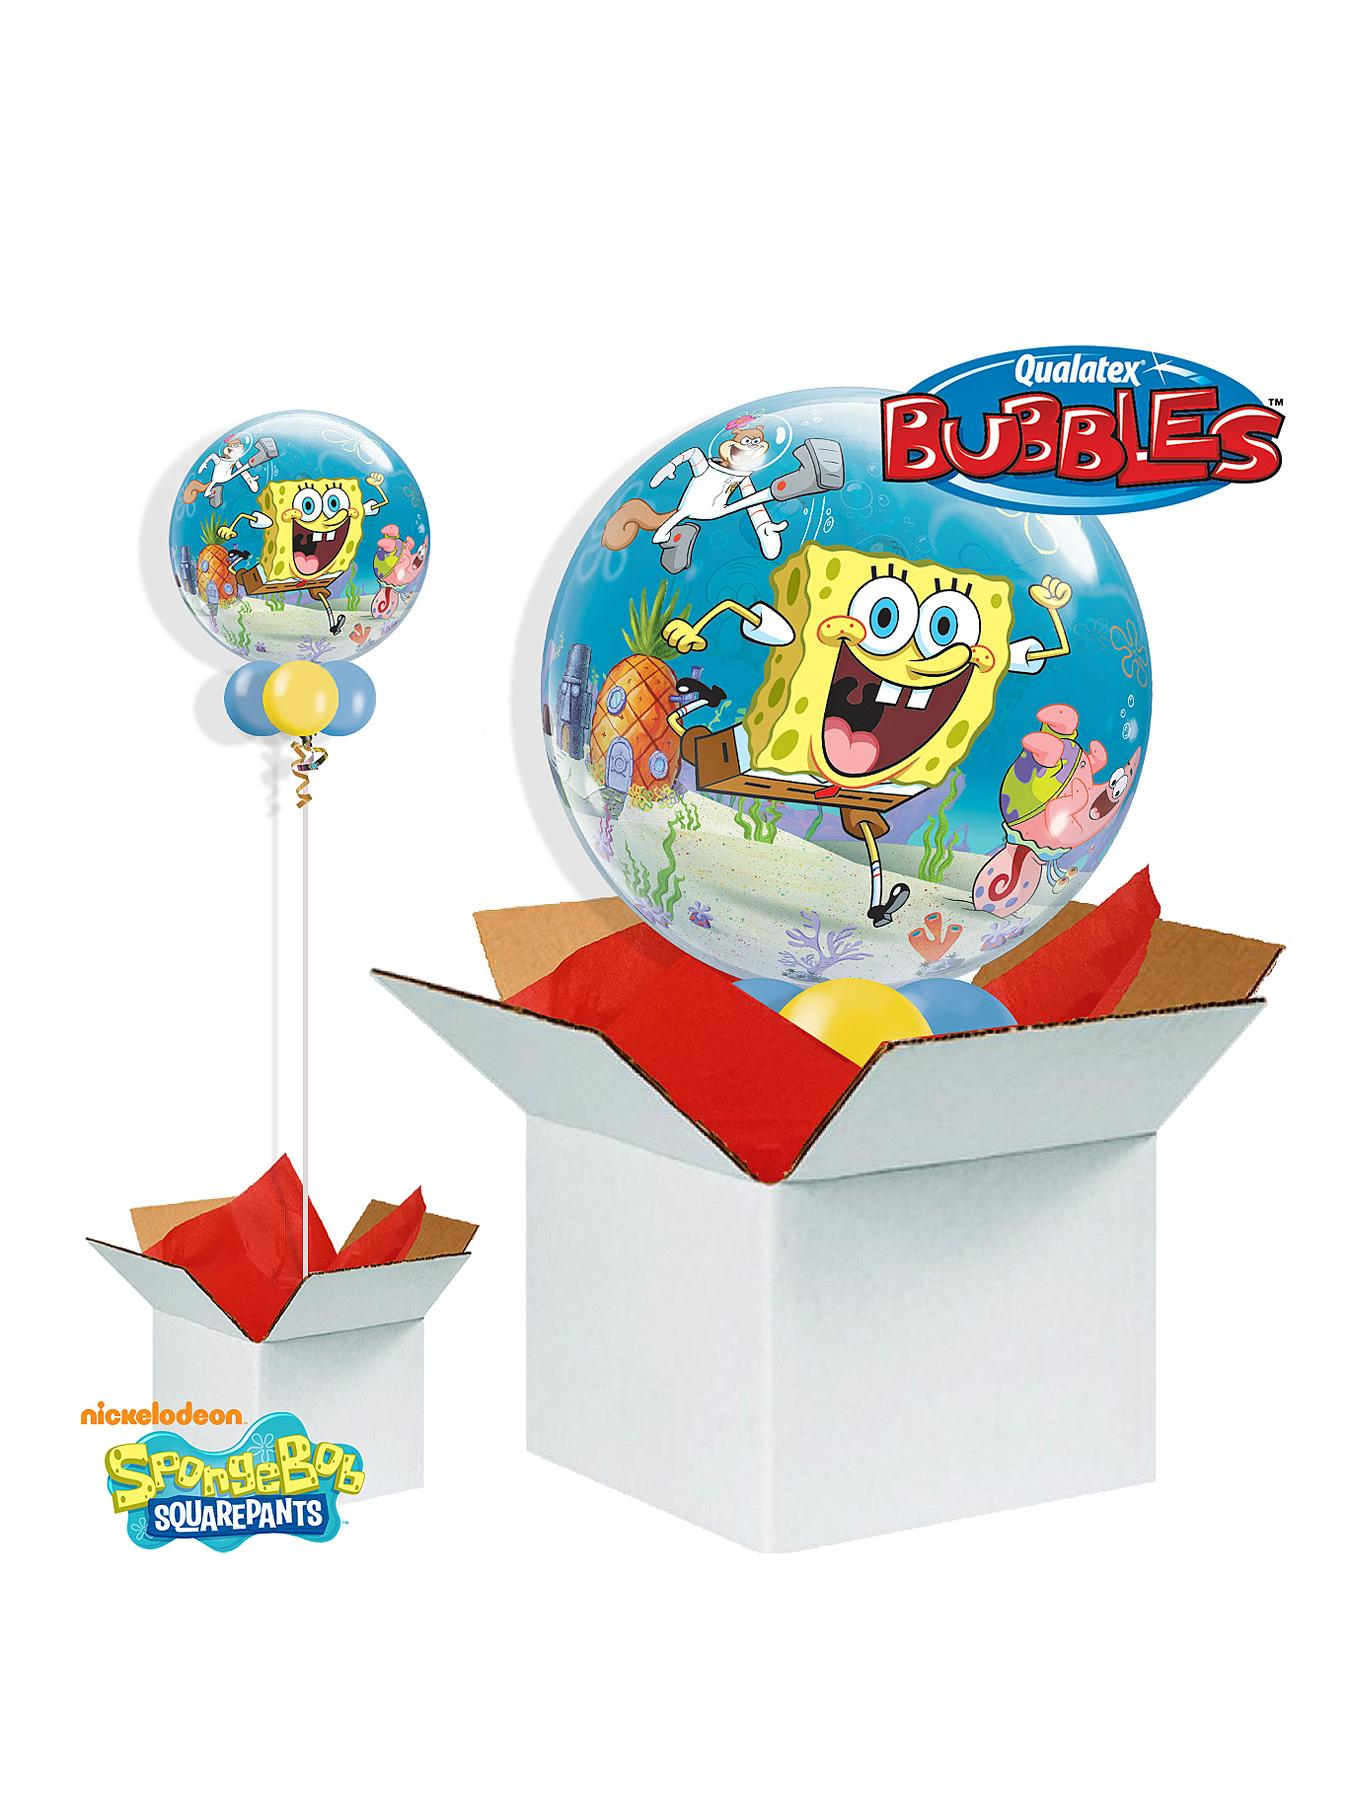 Spongebob Squarepants and Friends 22 inch Bubble Balloon